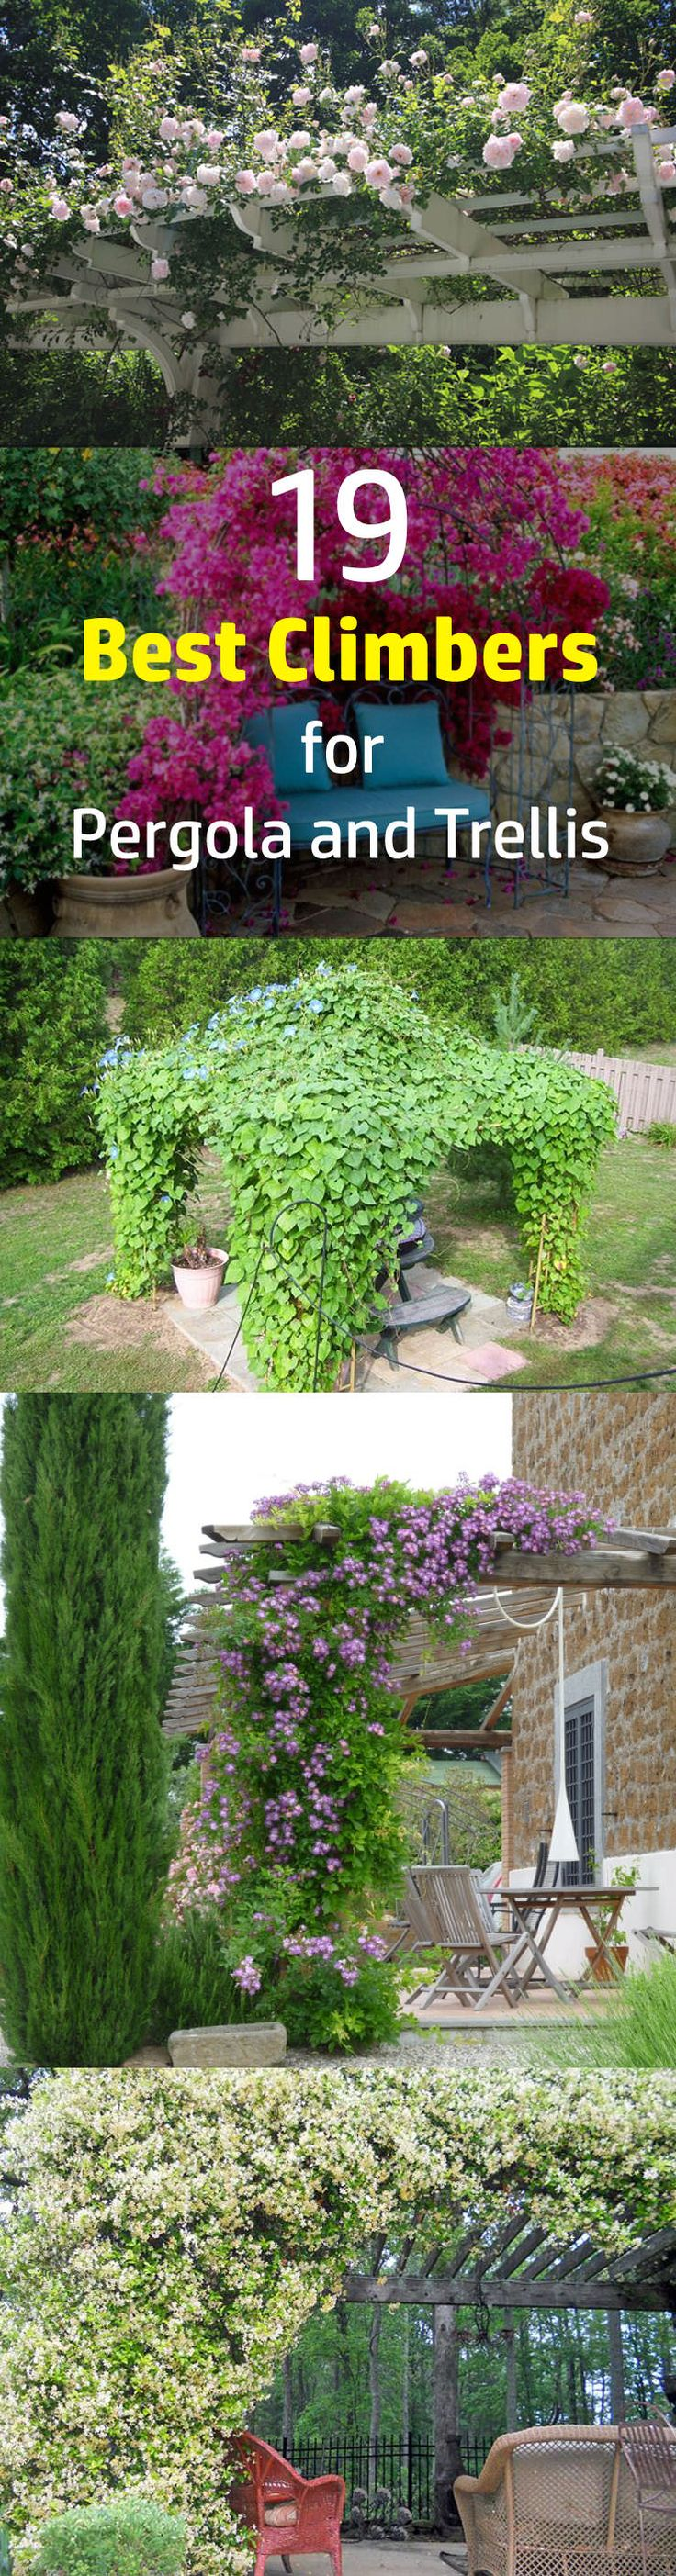 19 Best Climbing Plants For Pergolas And Trellises. Small Garden ...